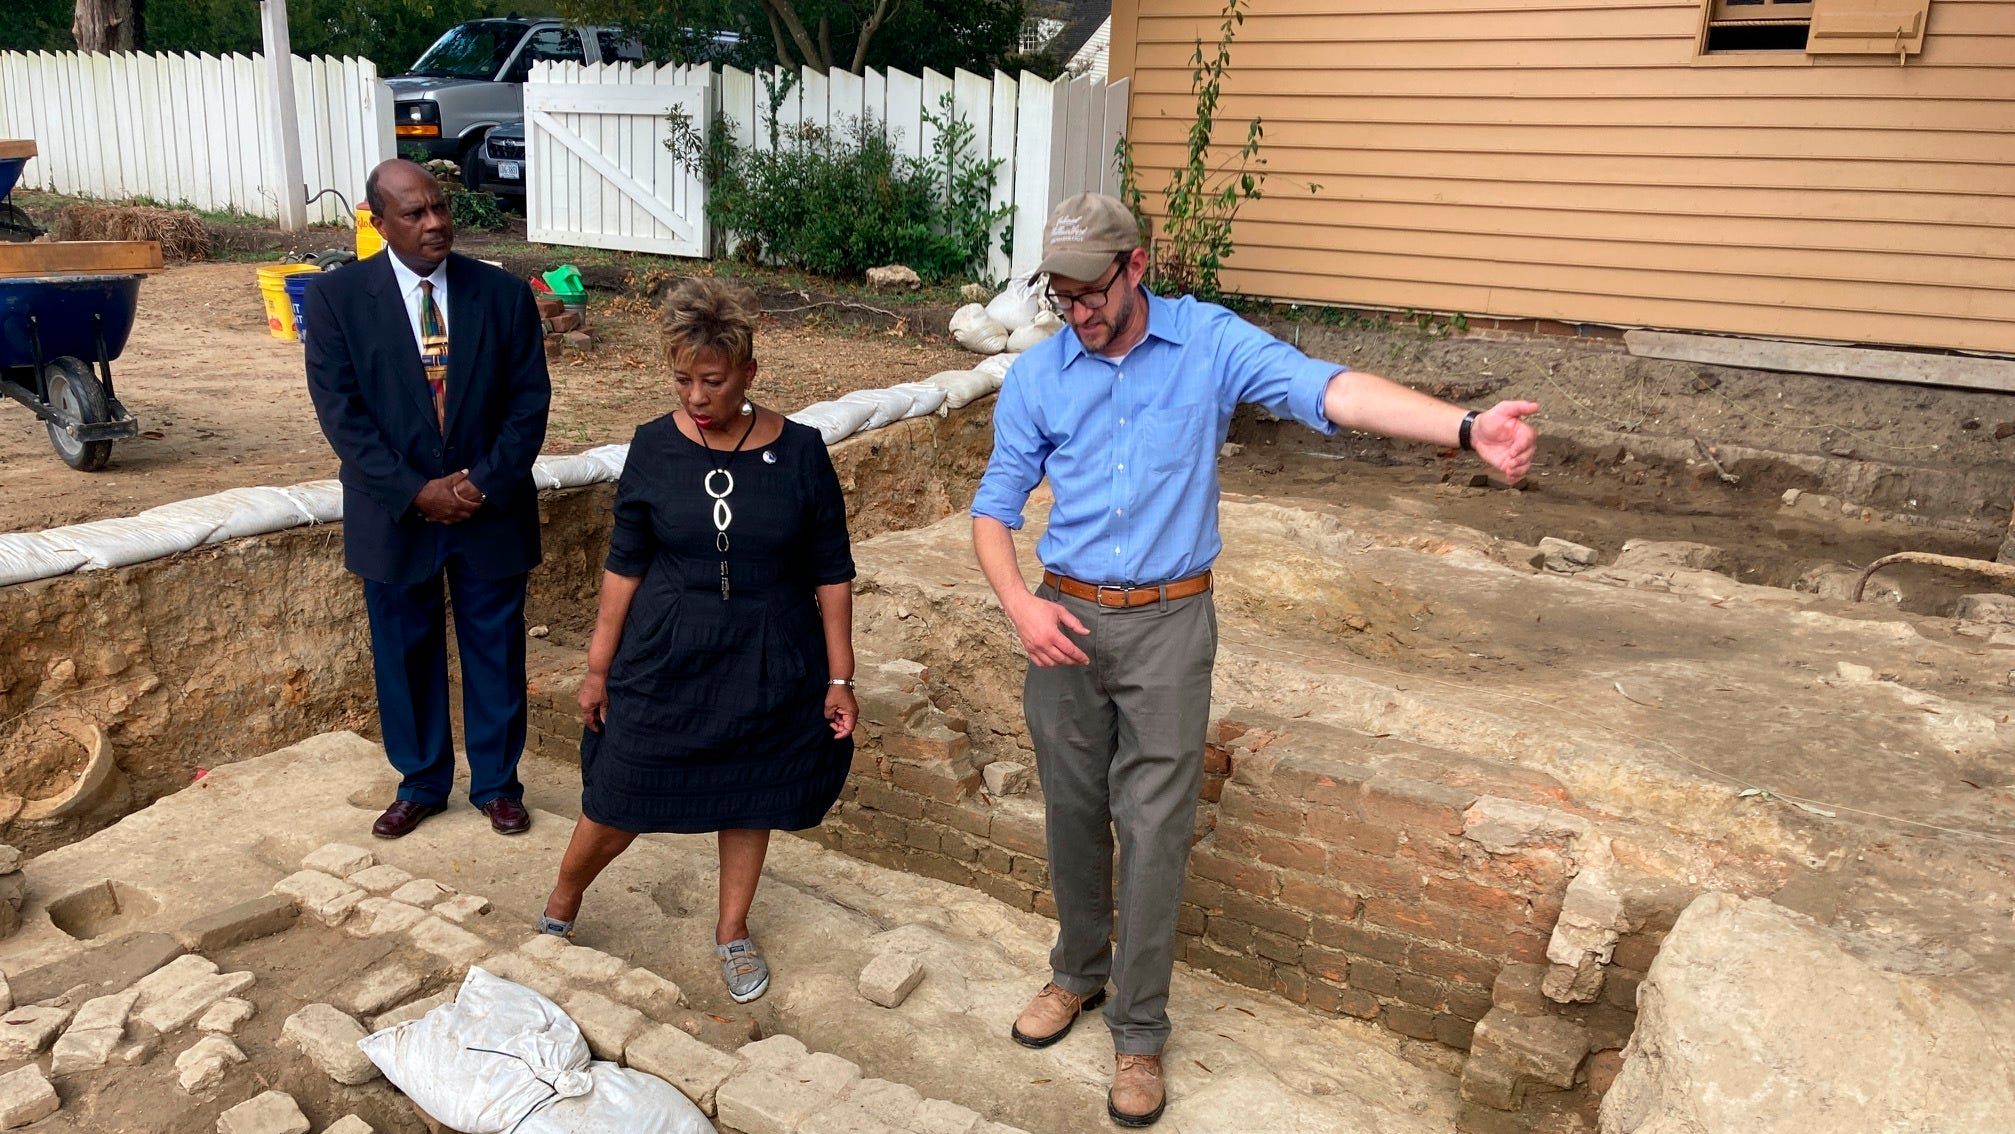 Reginald F. Davis, from left, pastor of First Baptist Church in Williamsburg, Connie Matthews Harshaw, a member of First Baptist, and Jack Gary, Colonial Williamsburg's director of archaeology, stand at the brick-and-mortar foundation of one the oldest Black churches in the U.S. on Wednesday in Williamsburg, Va.